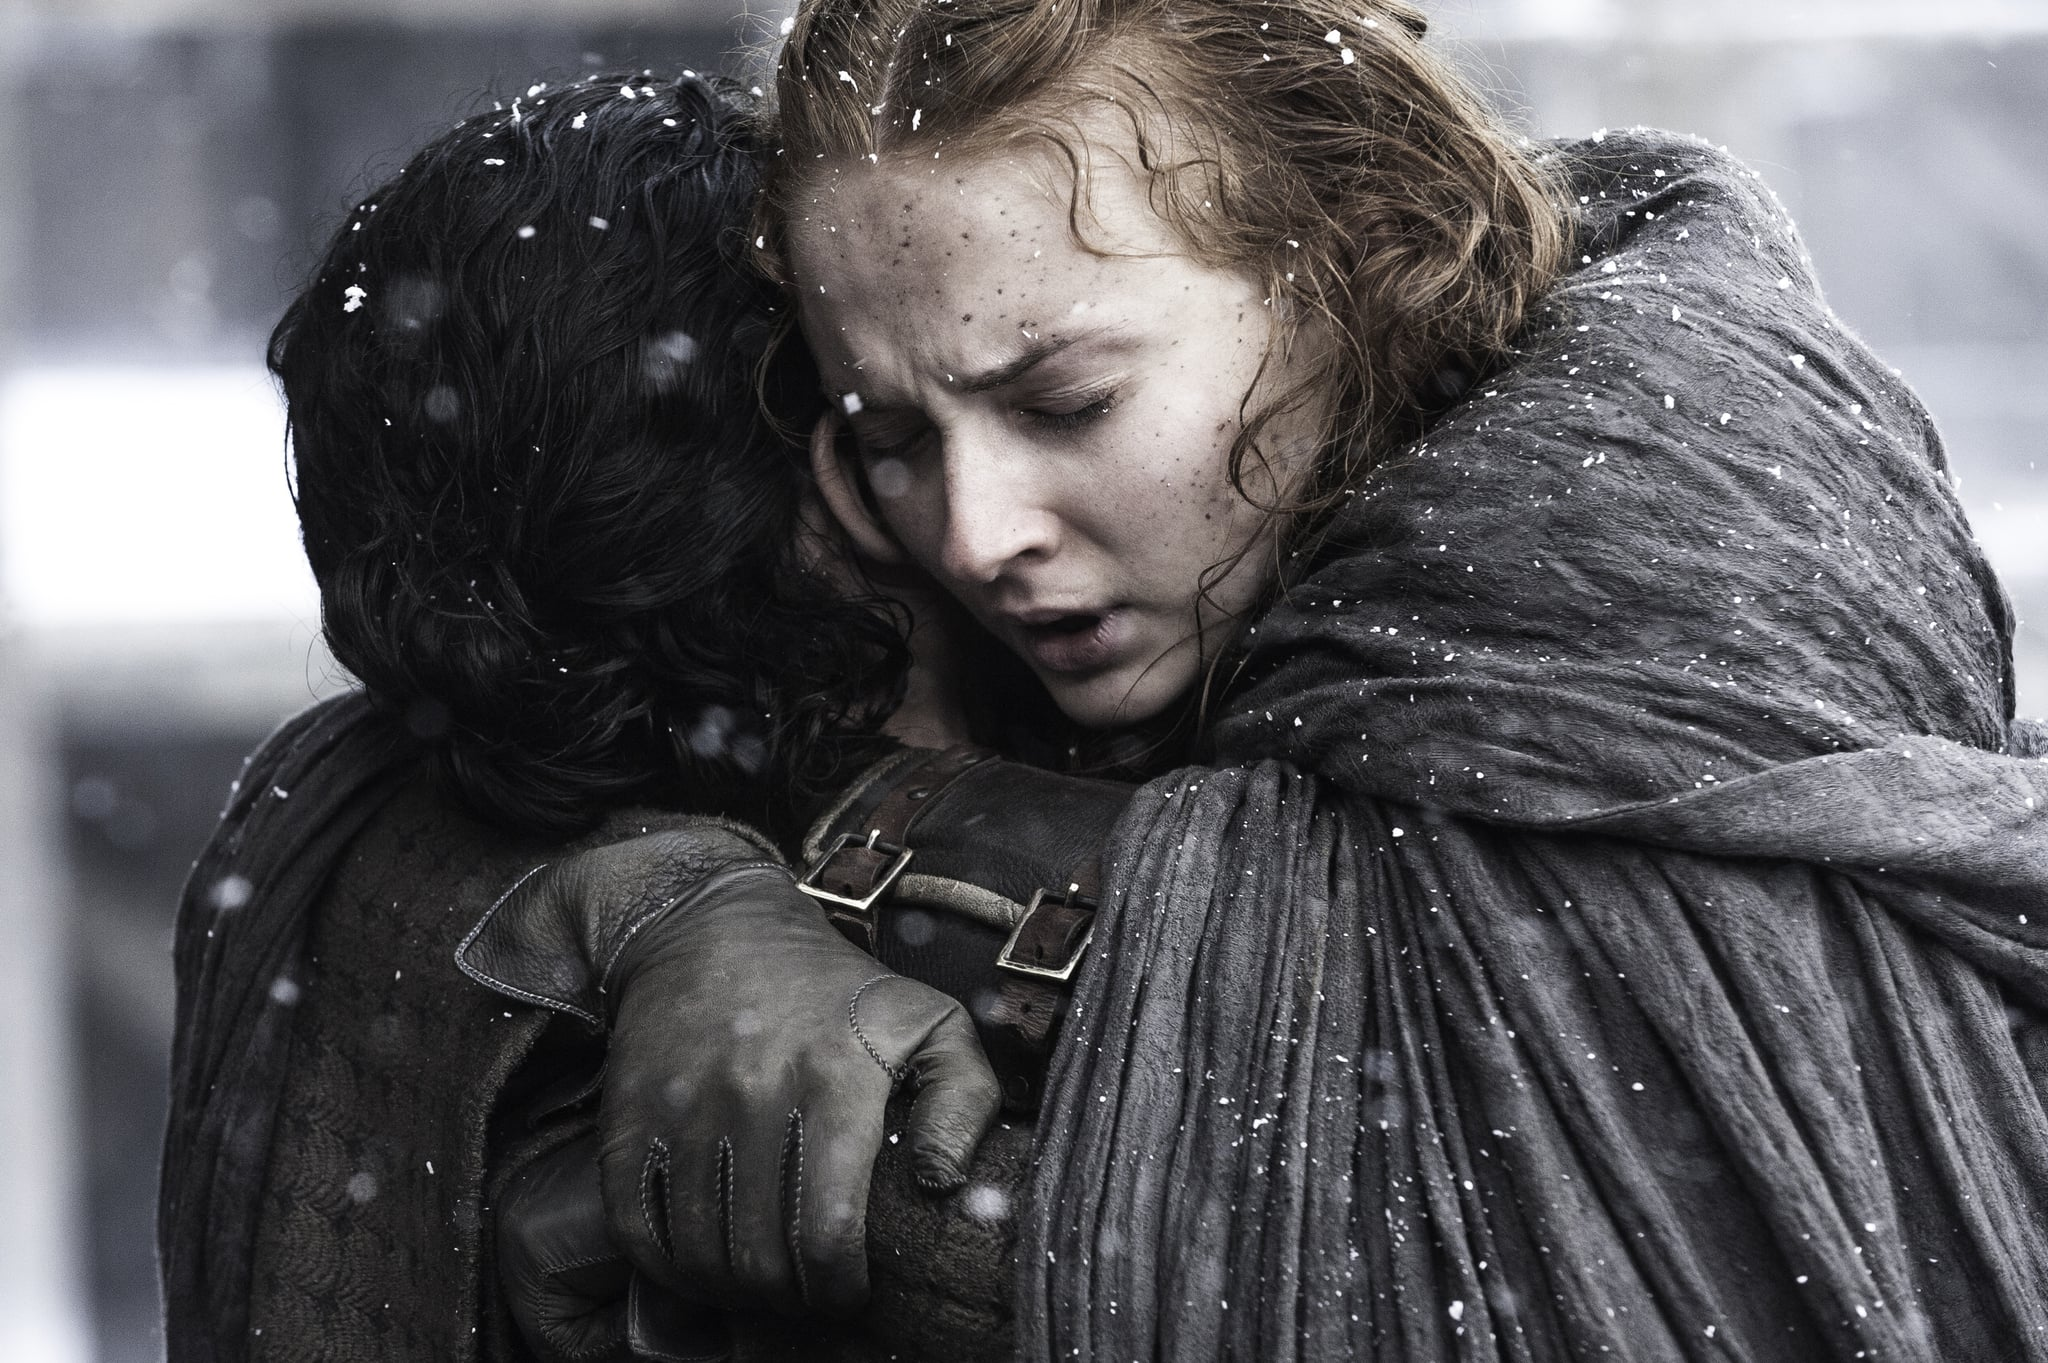 Sophie Turner and Kit Harington Had the Sweetest Game of Thrones Reunion at the Emmys